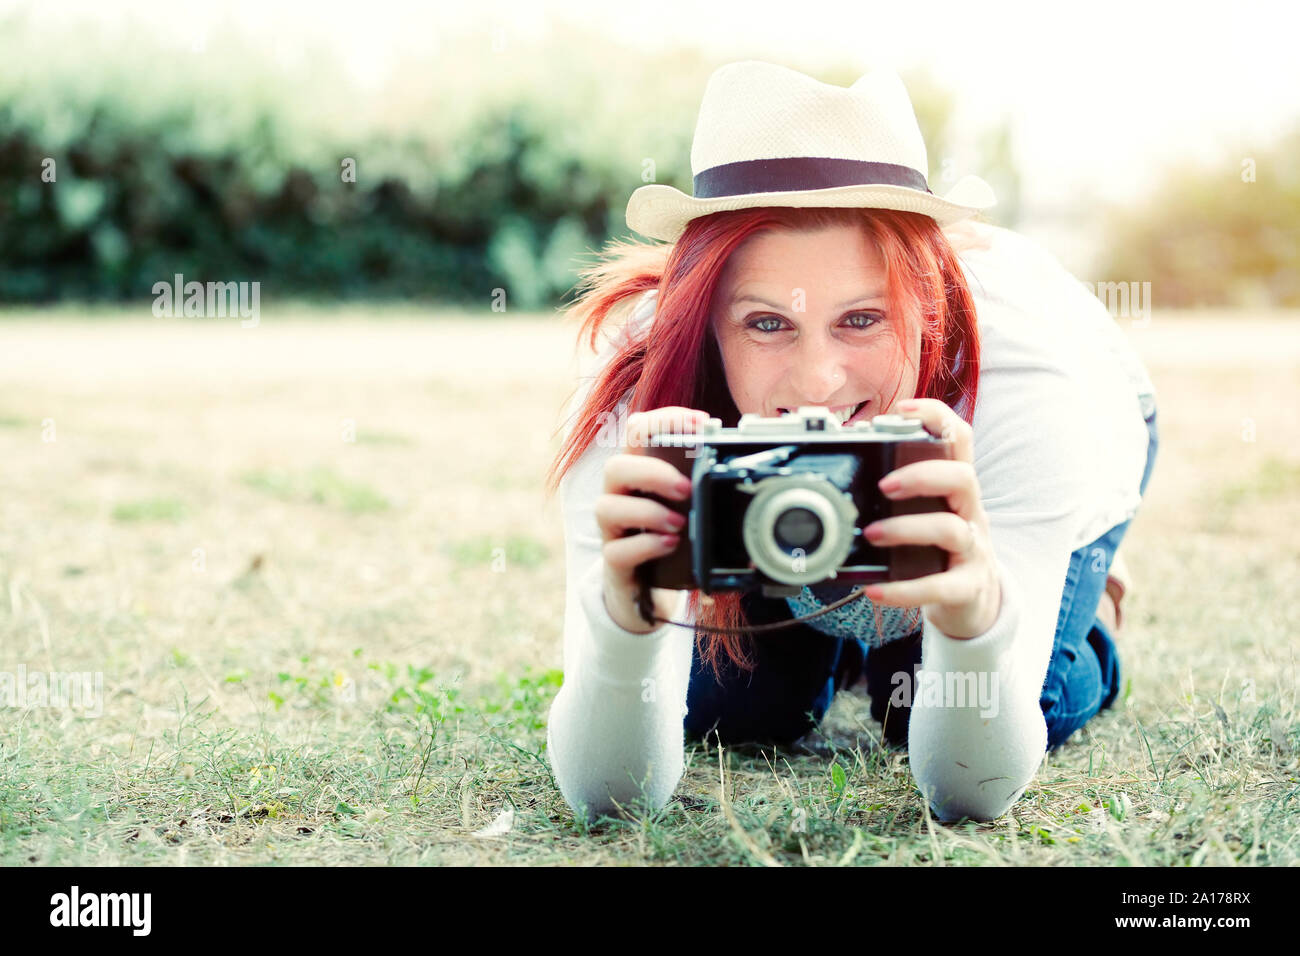 Portrait in the nature of a beautiful smiling red-haired woman using an old camera. vintage treatment Stock Photo